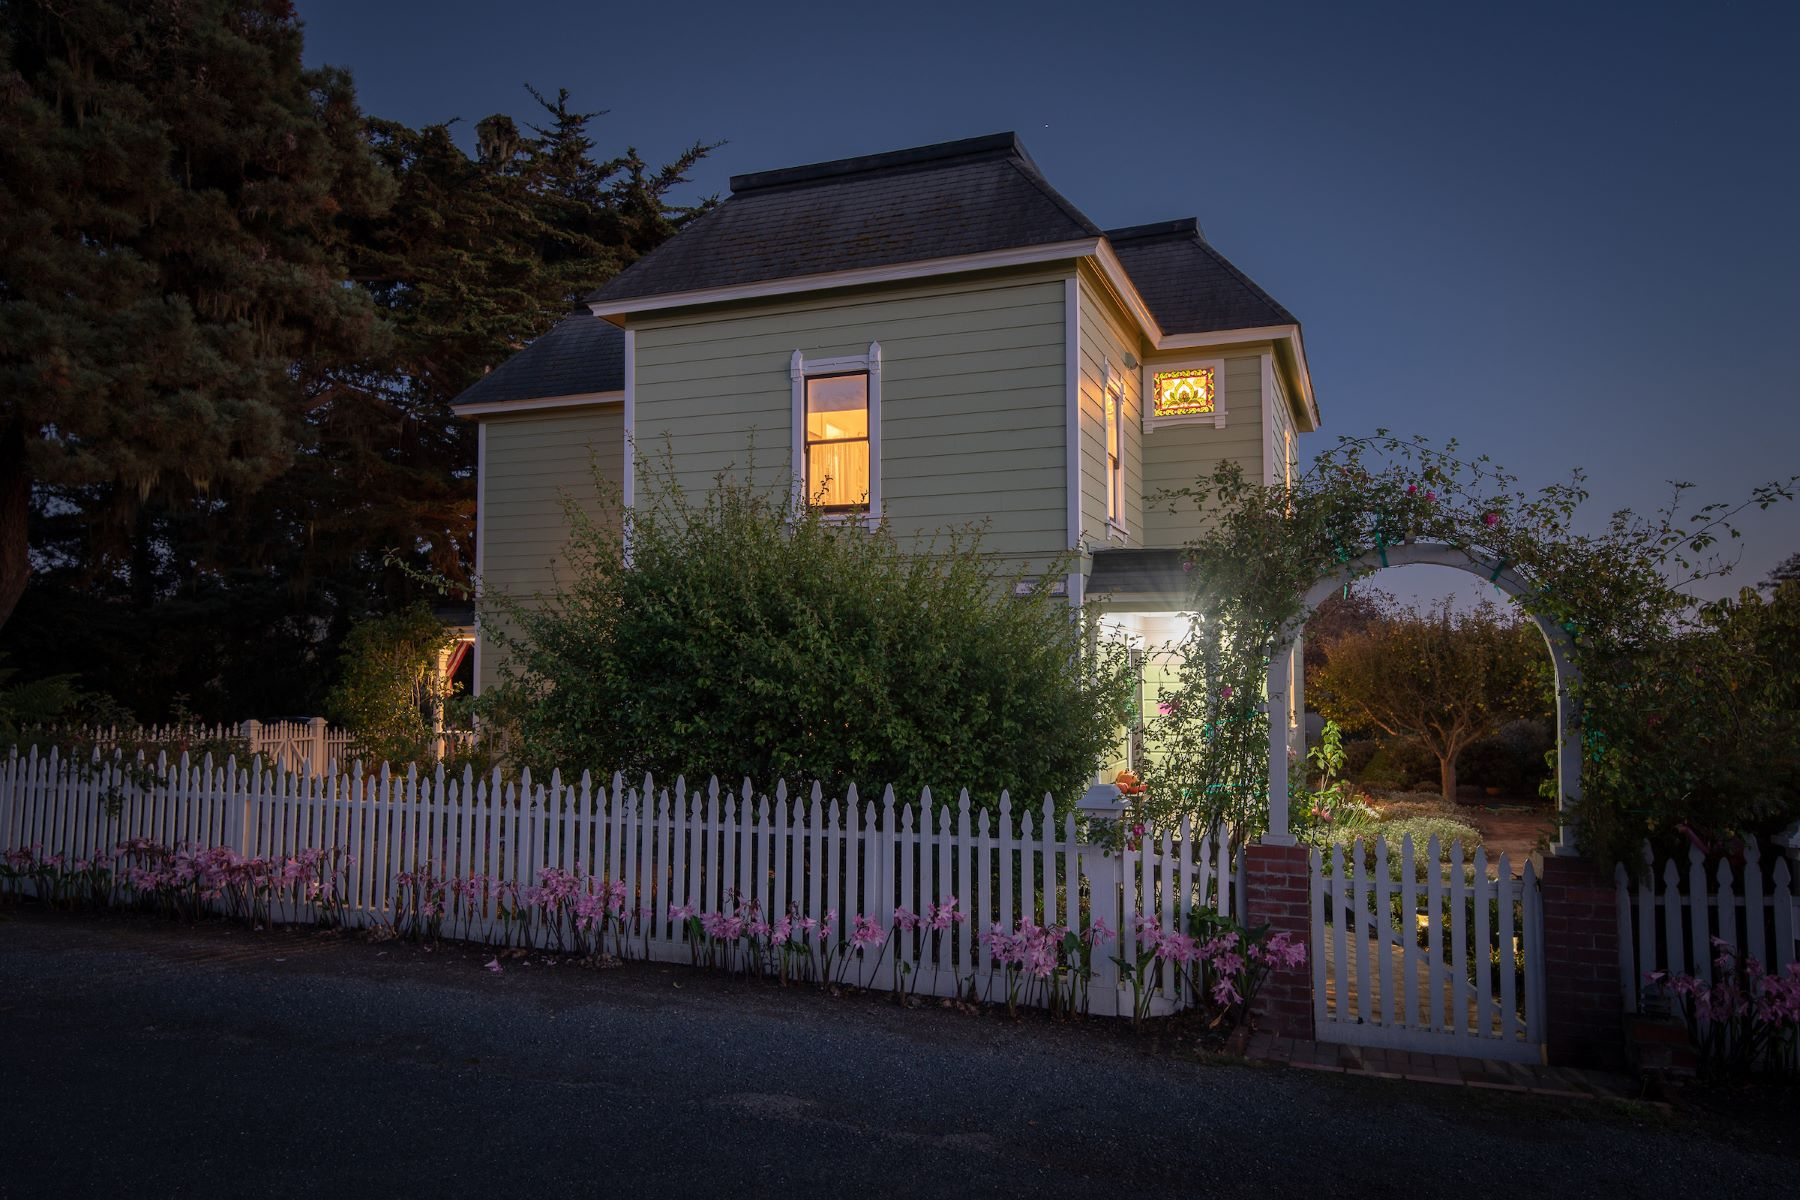 Additional photo for property listing at Village Elegance 44901 Pine Street Mendocino, California 95460 United States